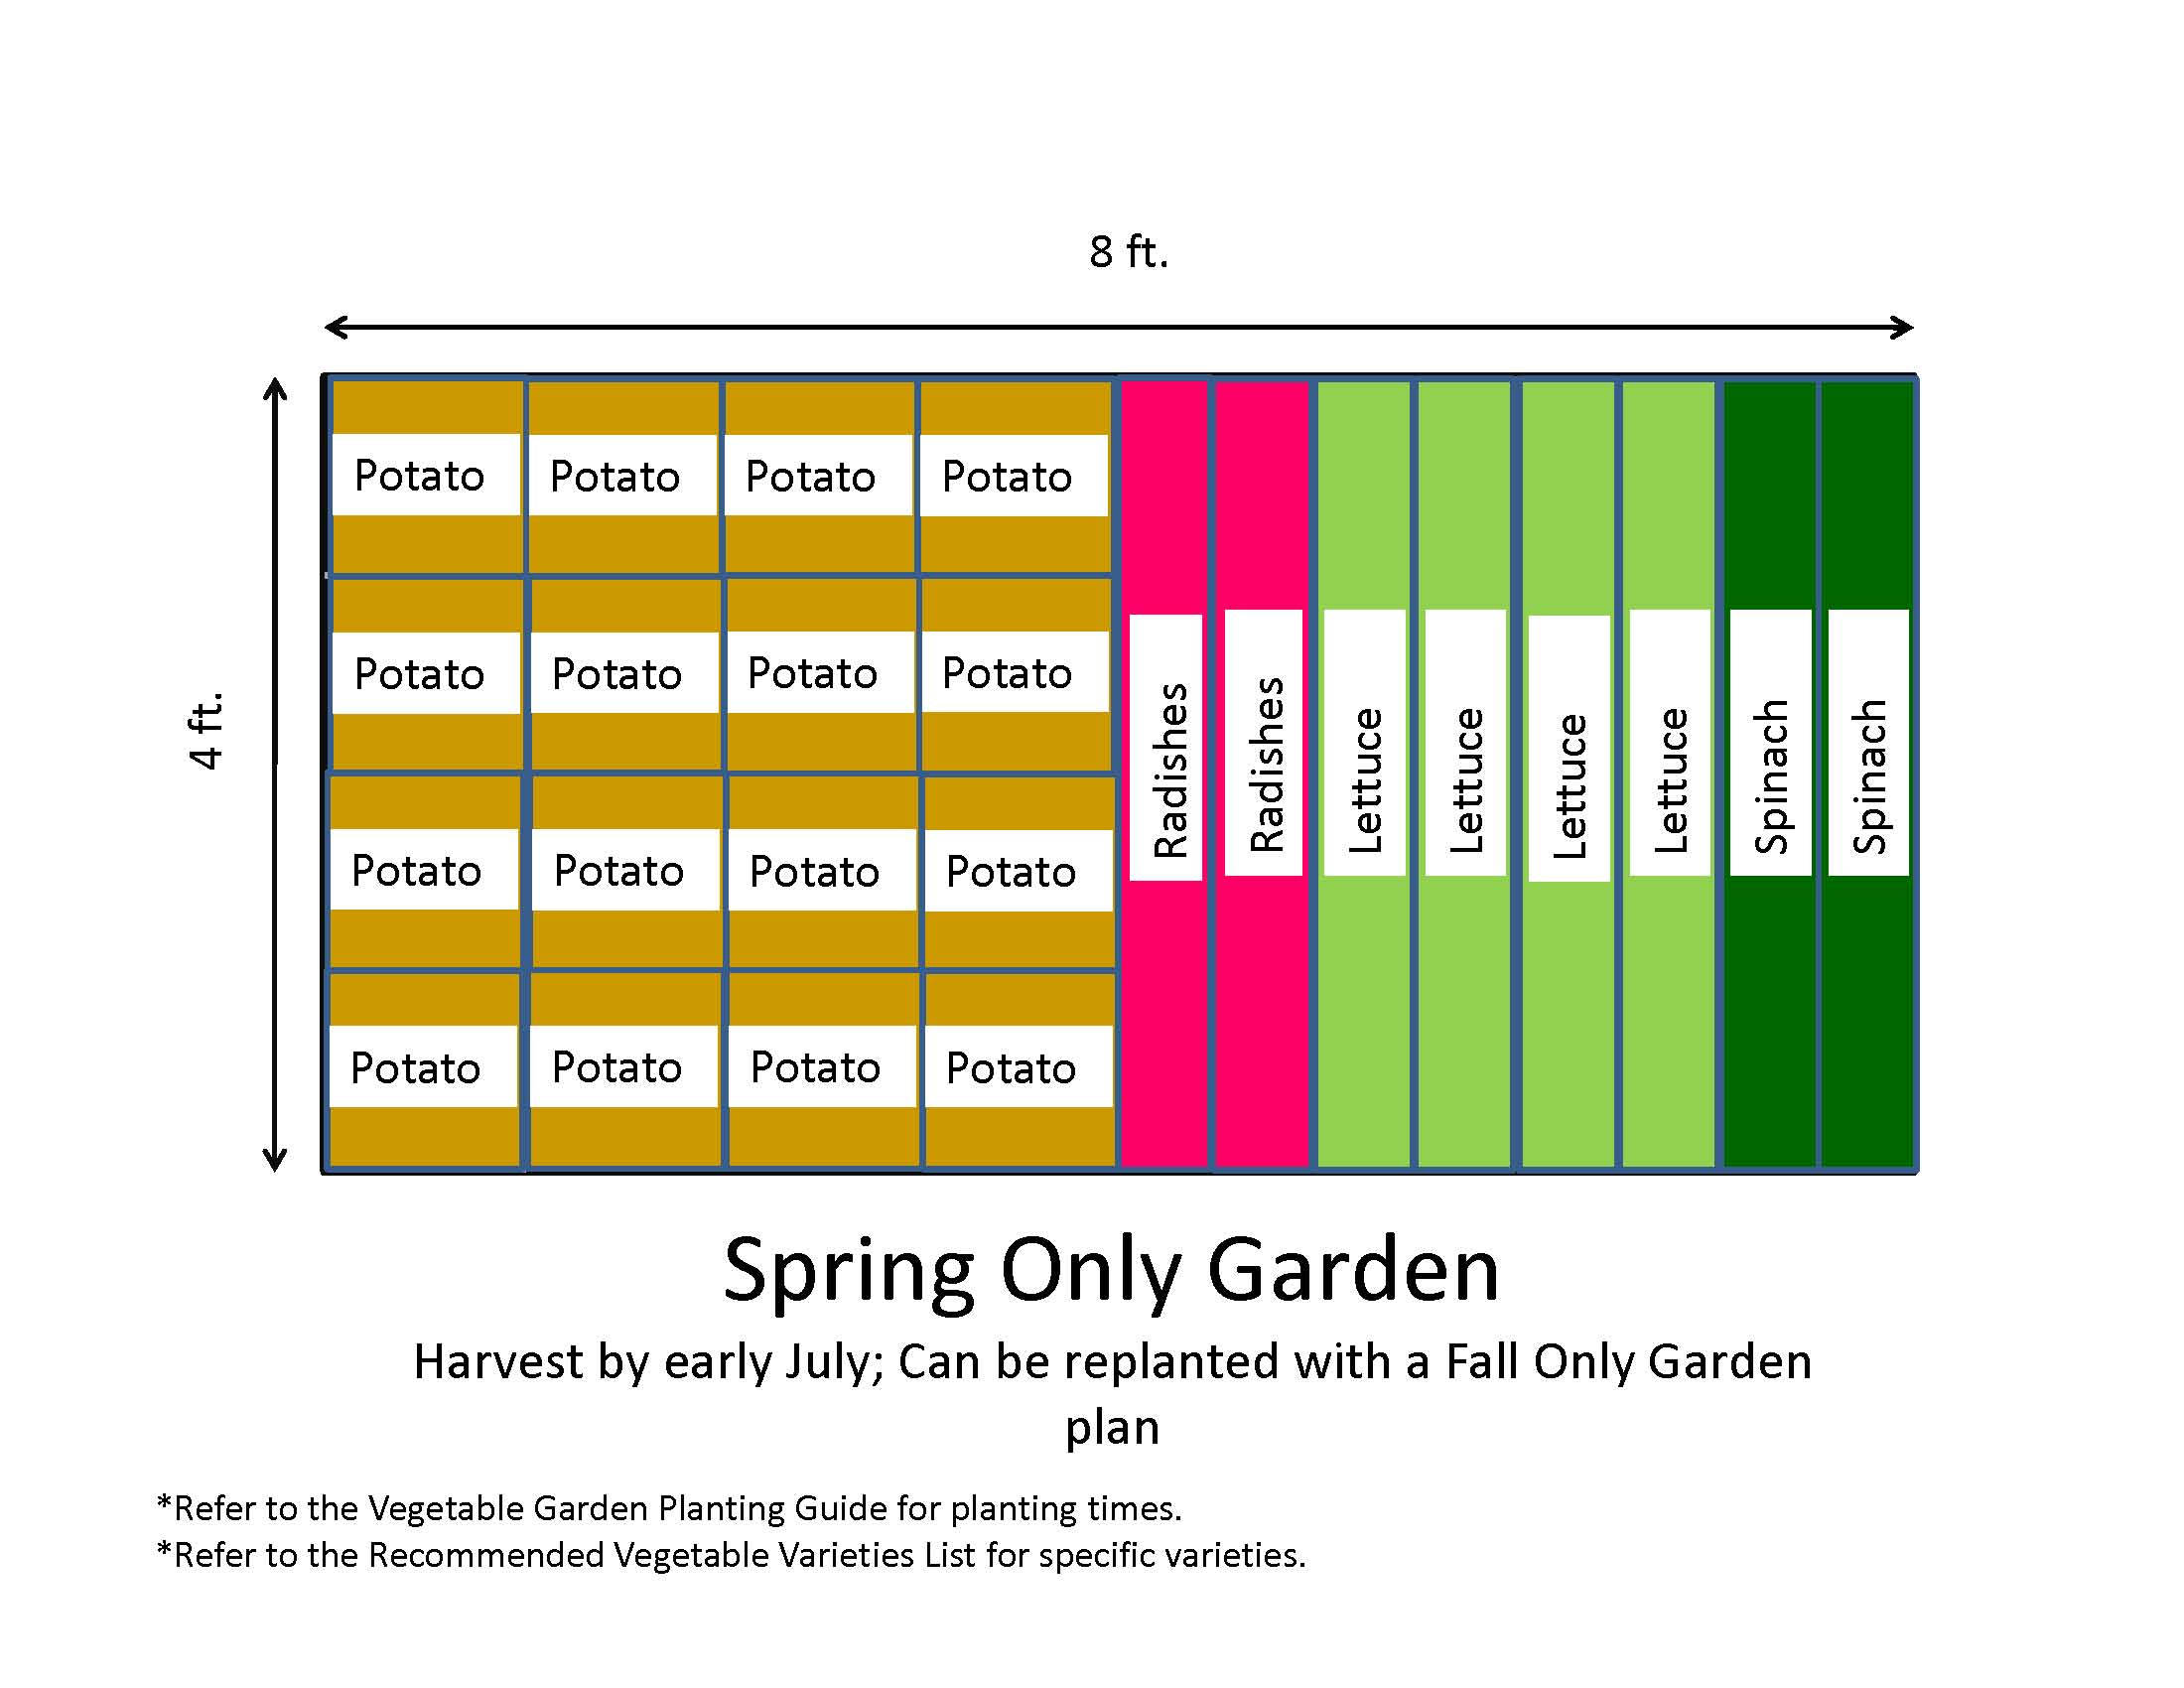 brilliant custom powerpoint design is a beautiful thing heres an example story of a perfect candidate for a template the greenwize company makes gardening